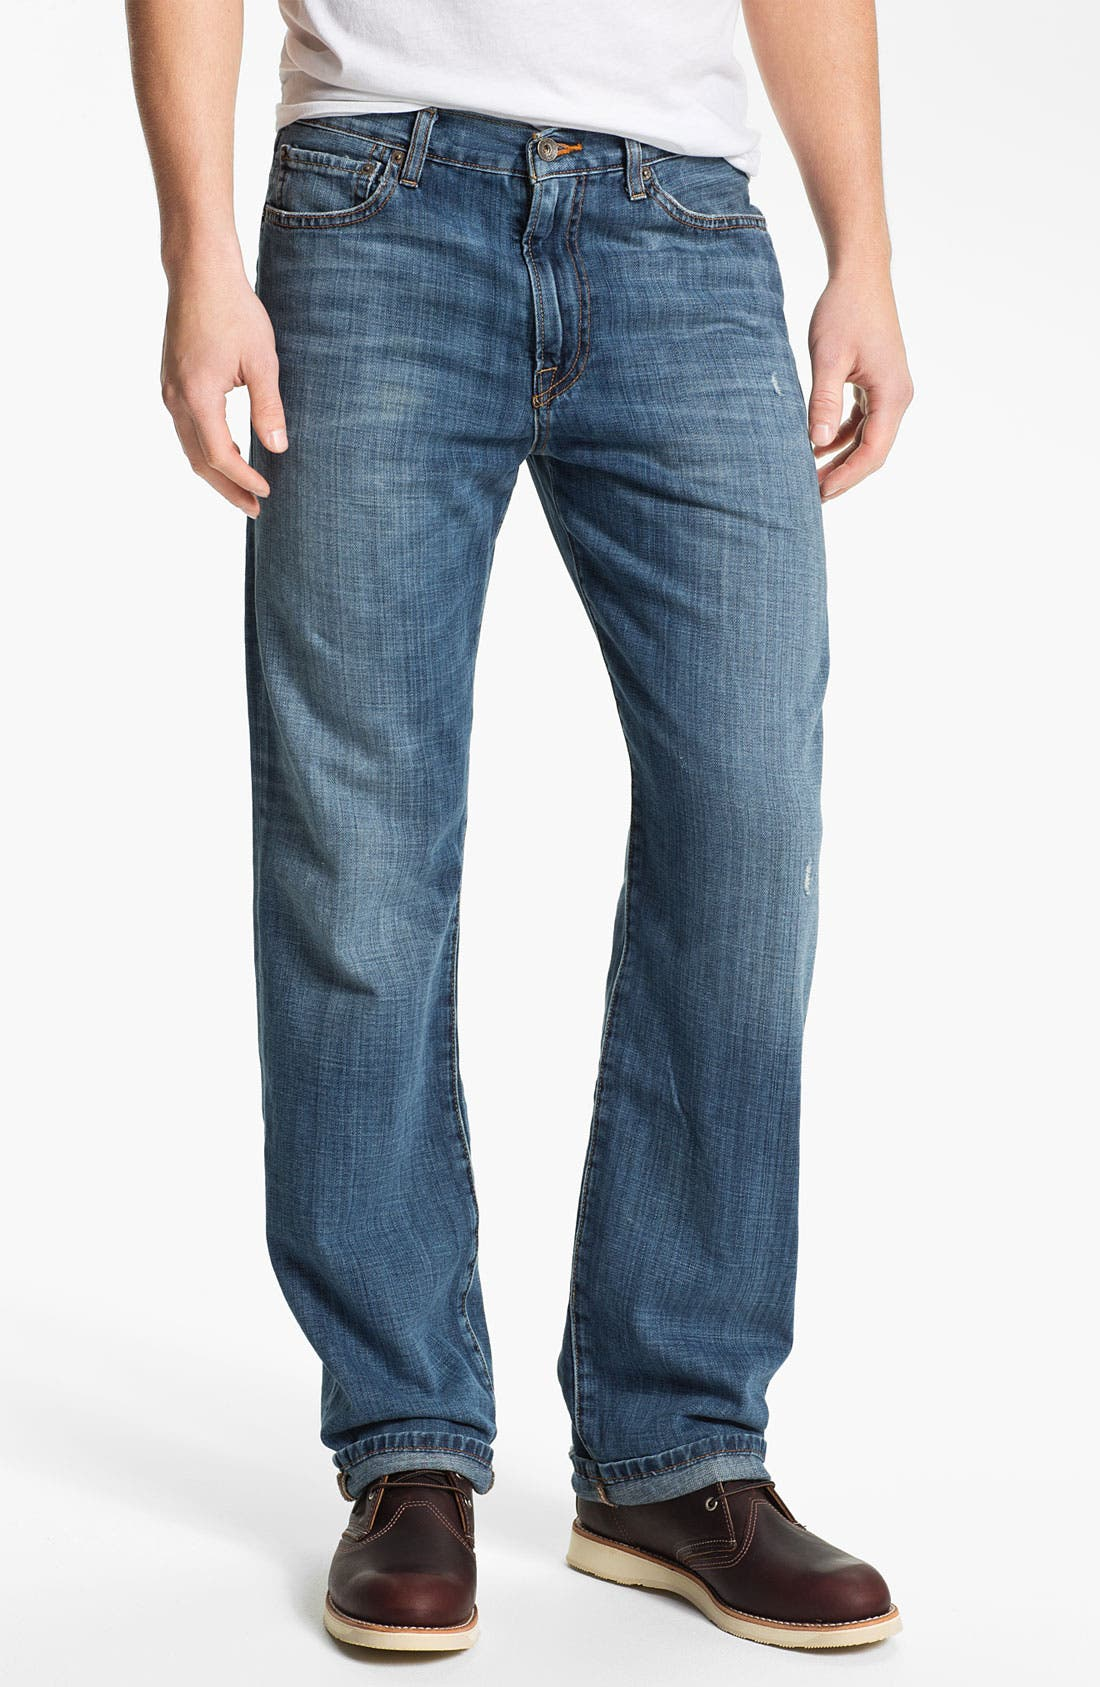 Alternate Image 1 Selected - Lucky Brand '329 Classic' Straight Leg Jeans (Light Gessner)